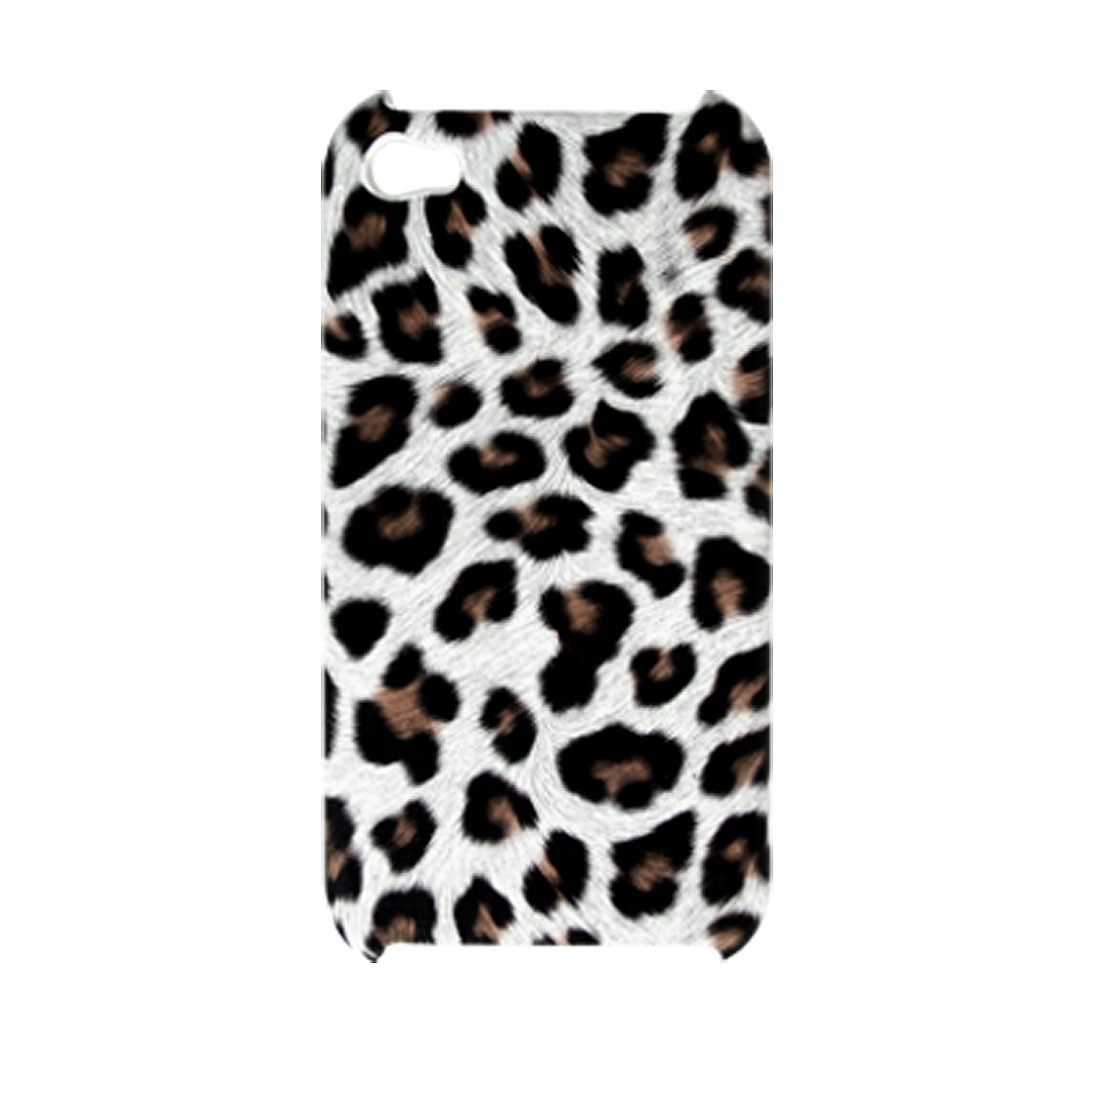 Leopard Pattern Plastic Protective Back Shield Case for iPhone 4 4G